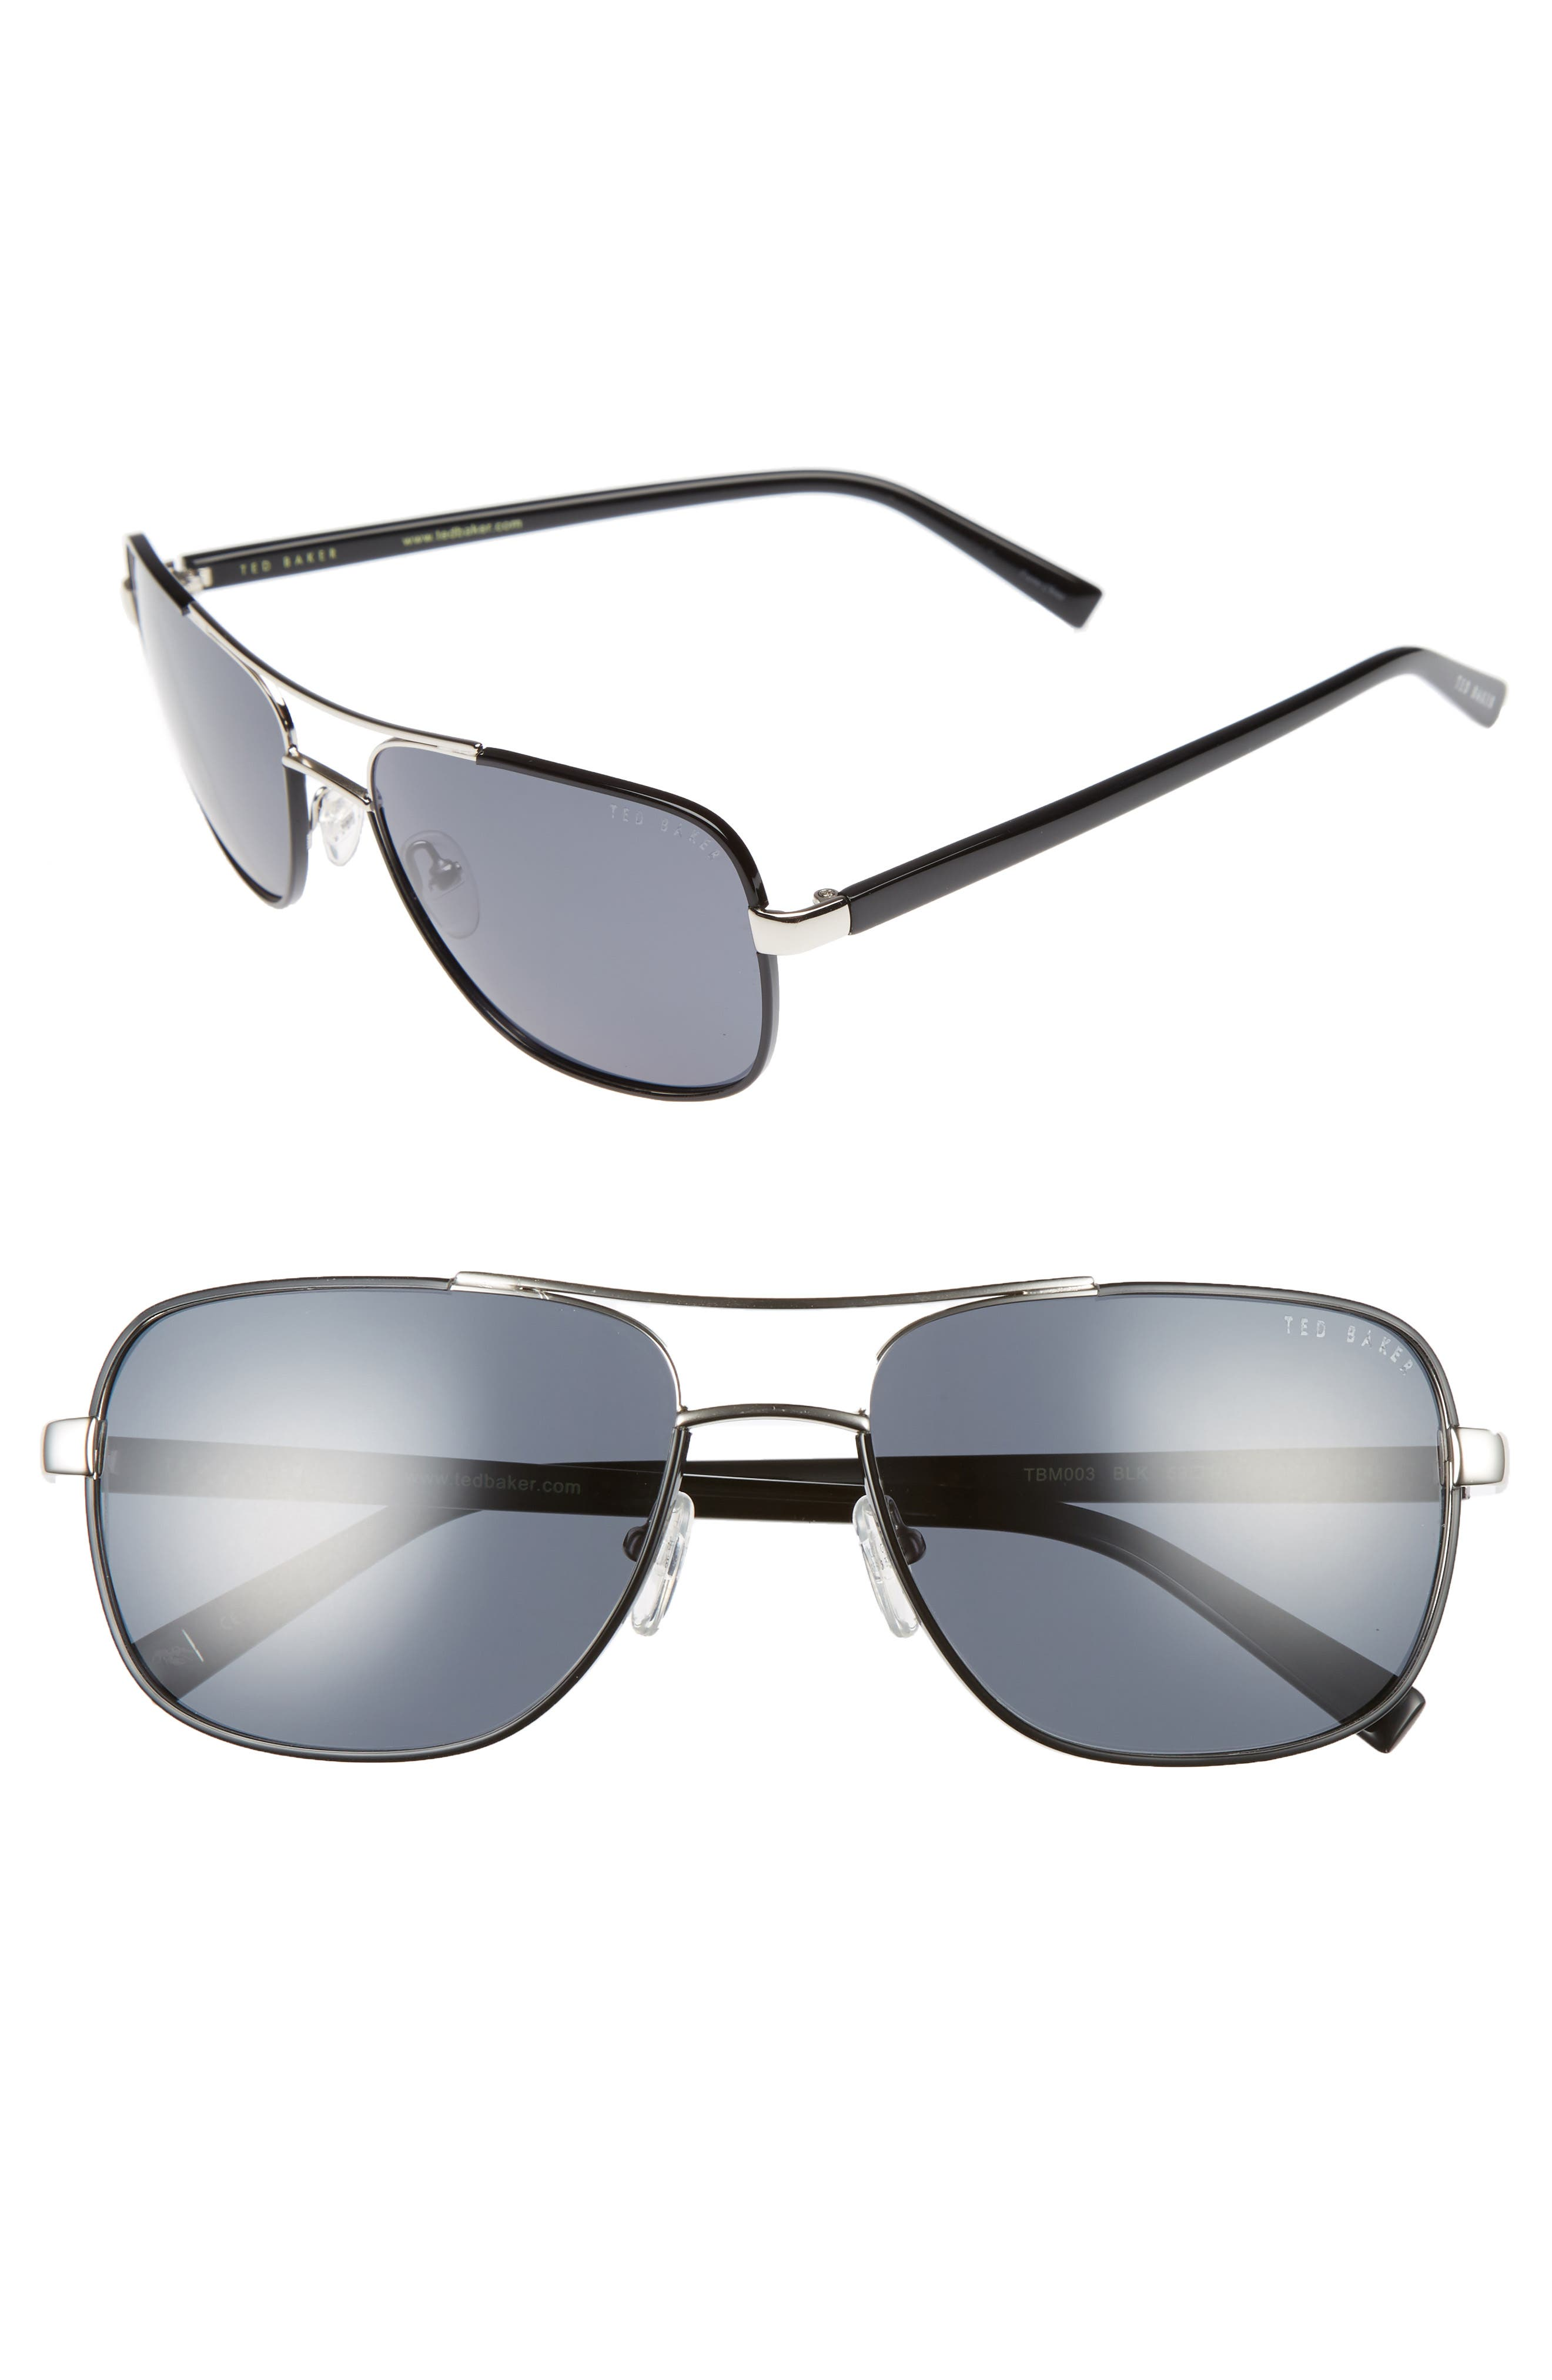 Main Image - Ted Baker London 59mm Polarized Navigator Sunglasses